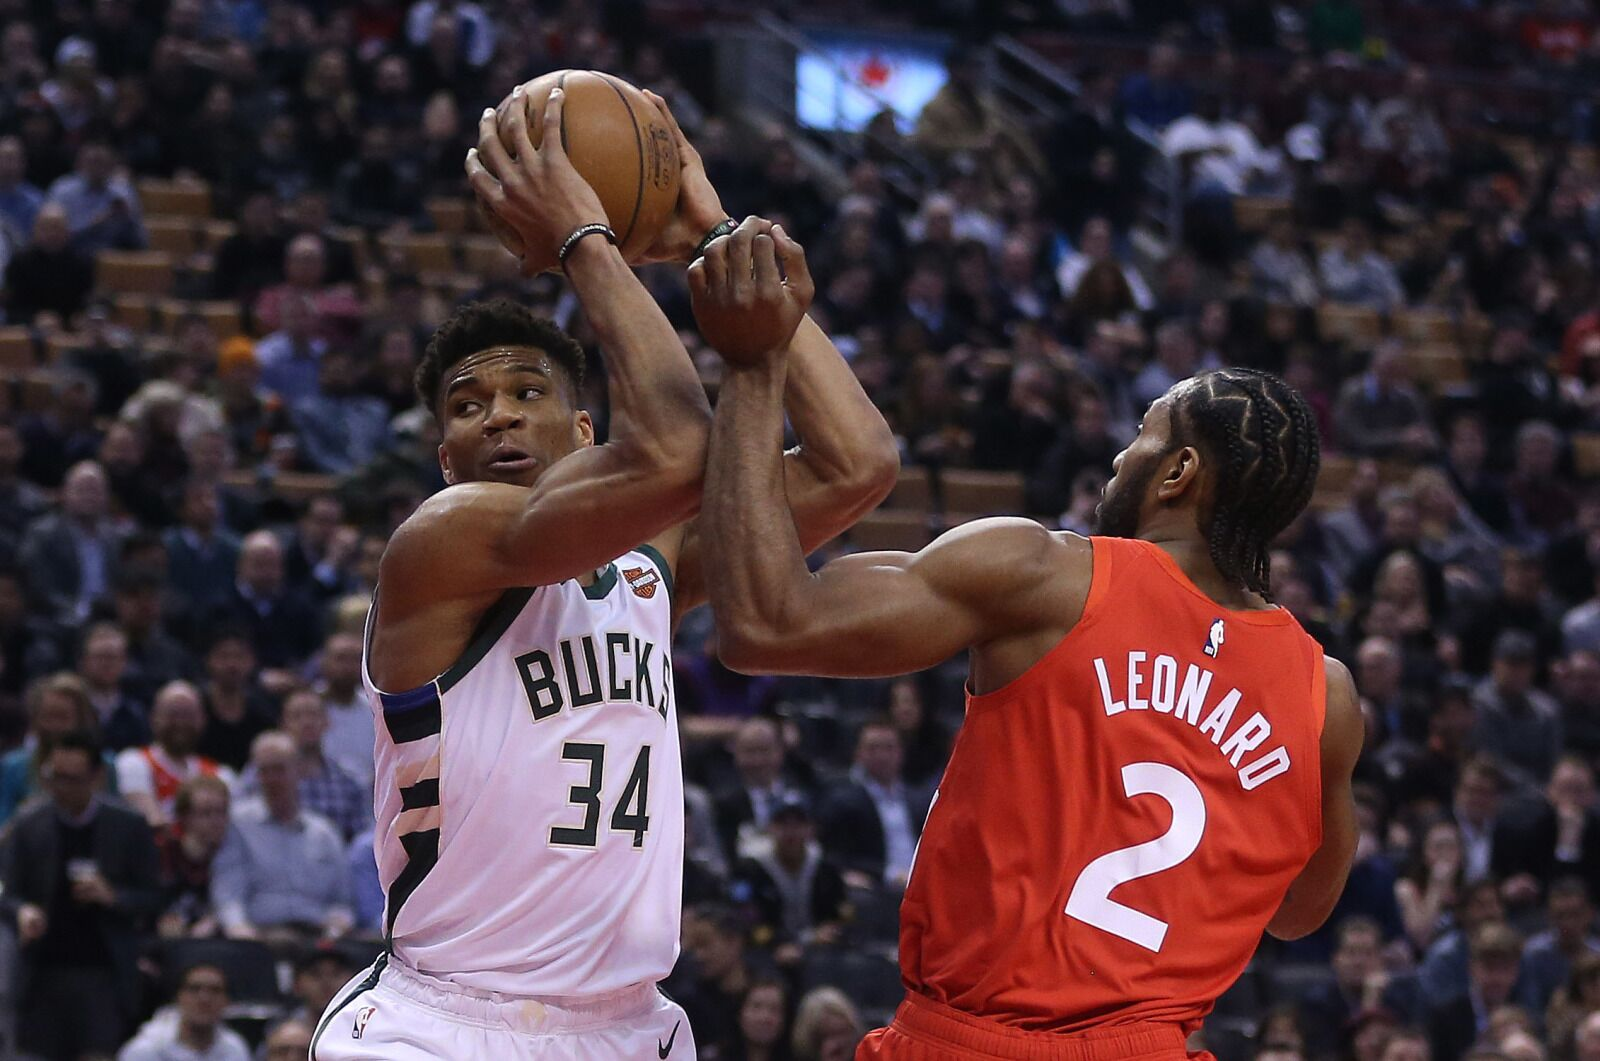 Milwaukee Bucks: How are Eastern Conference rivals faring in the playoffs so far?